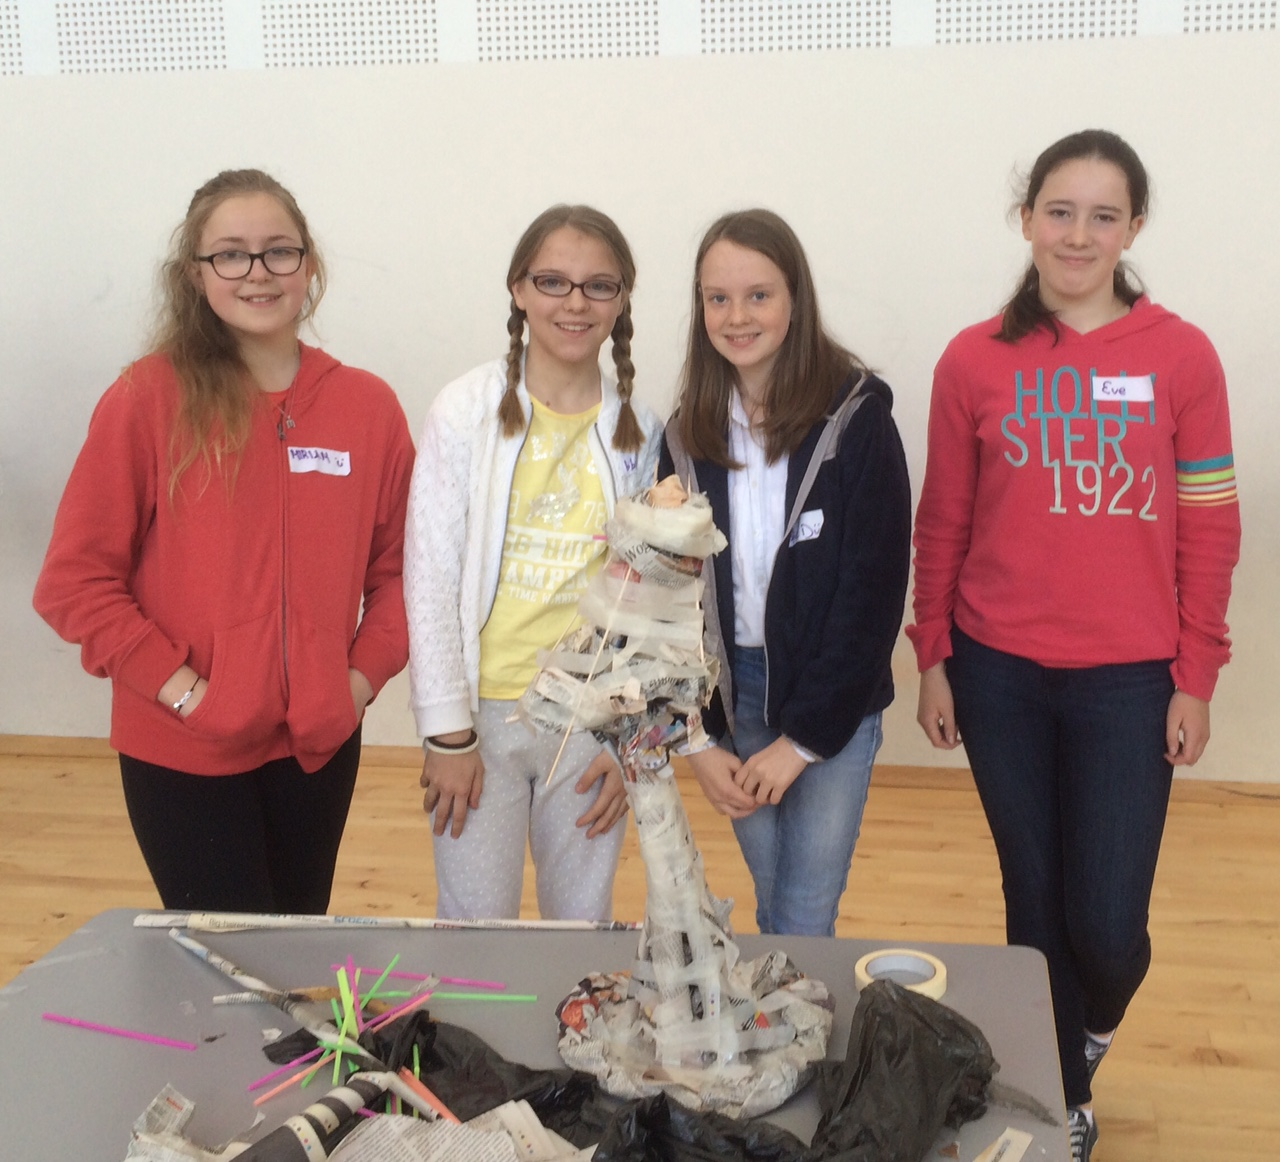 Student team-building day at Carrigaline Educate Together National School